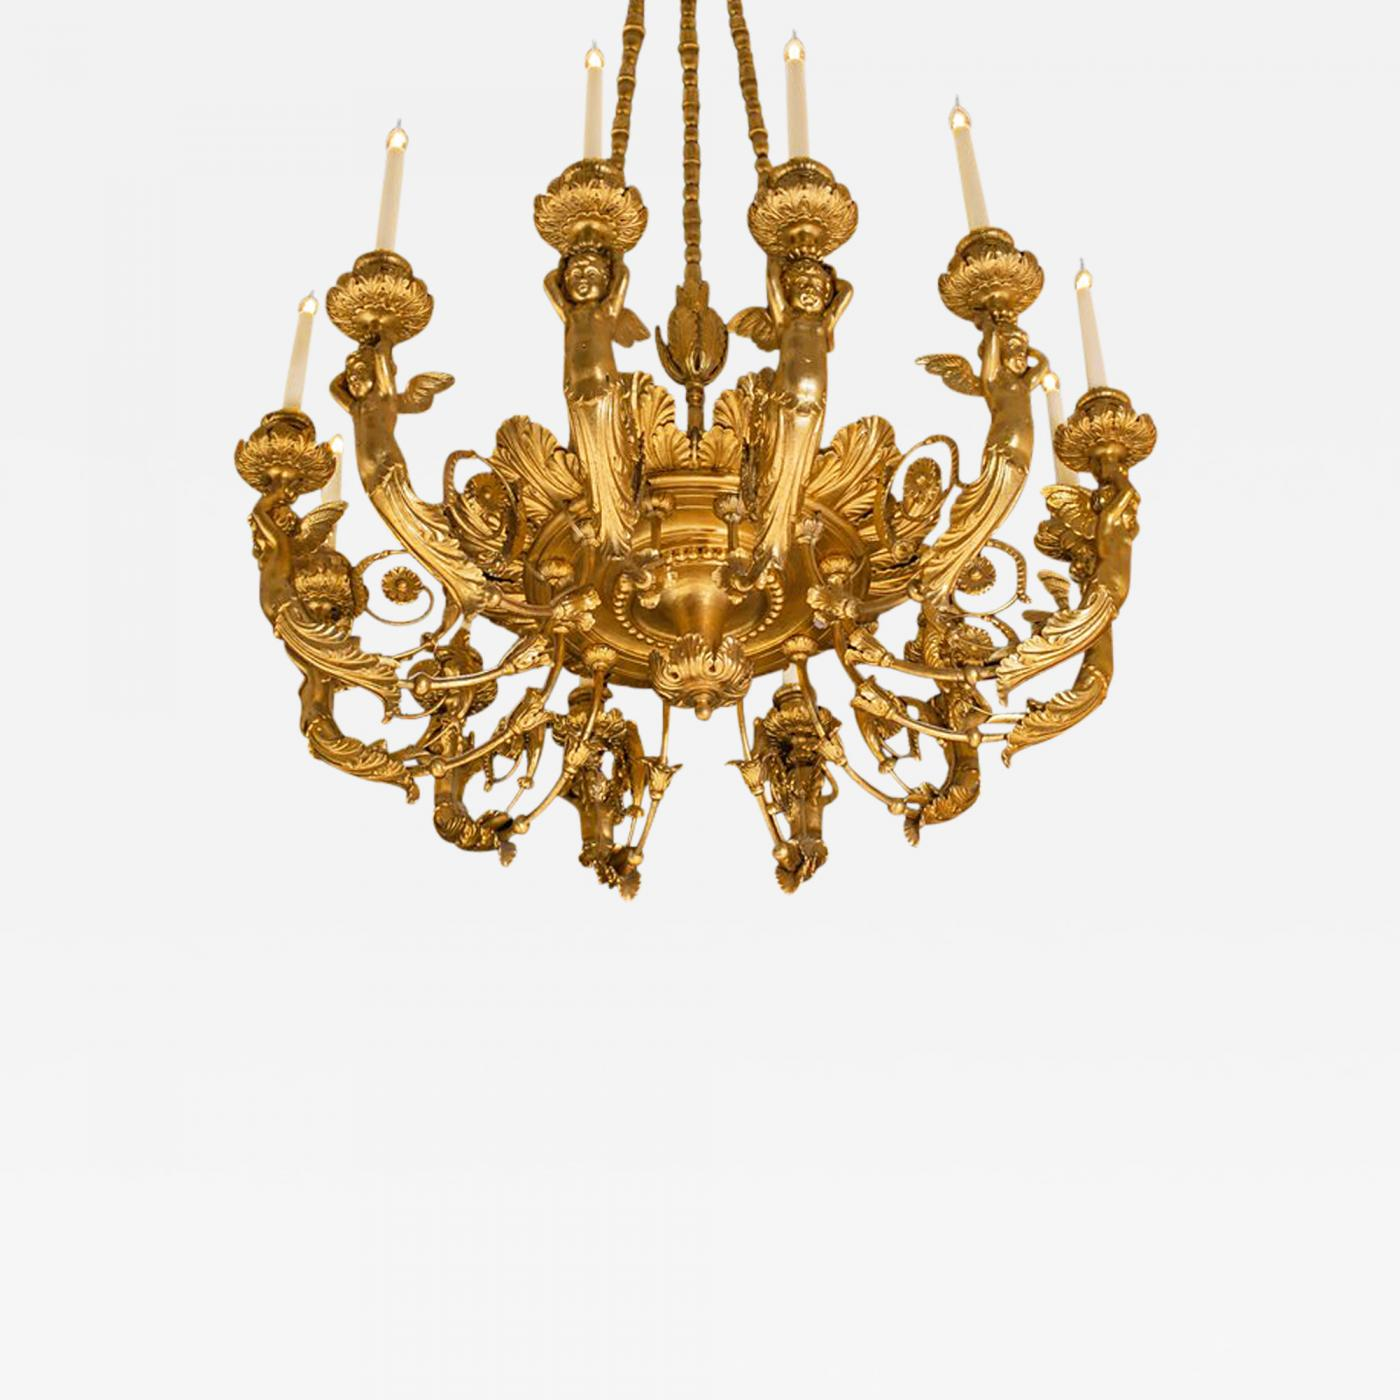 Italian 19th century gold carved wood chandelier listings furniture lighting chandeliers and pendants italian 19th century gold carved wood chandelier aloadofball Gallery